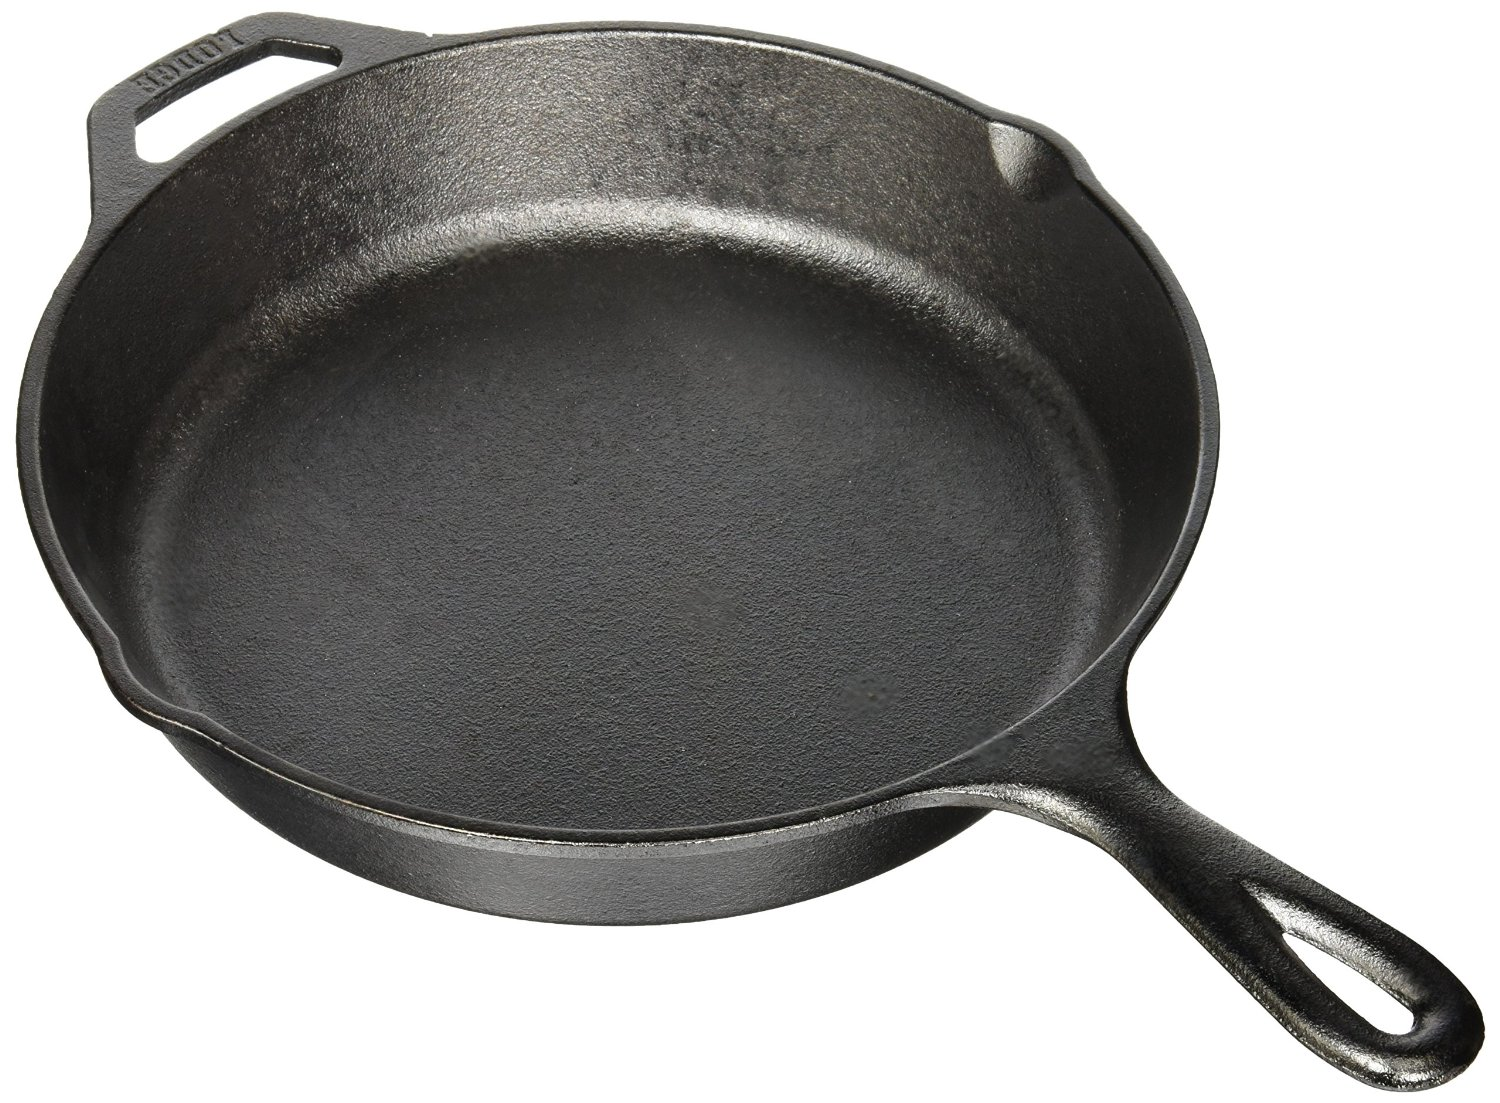 Three Ways to Season a Cast Iron Skillet